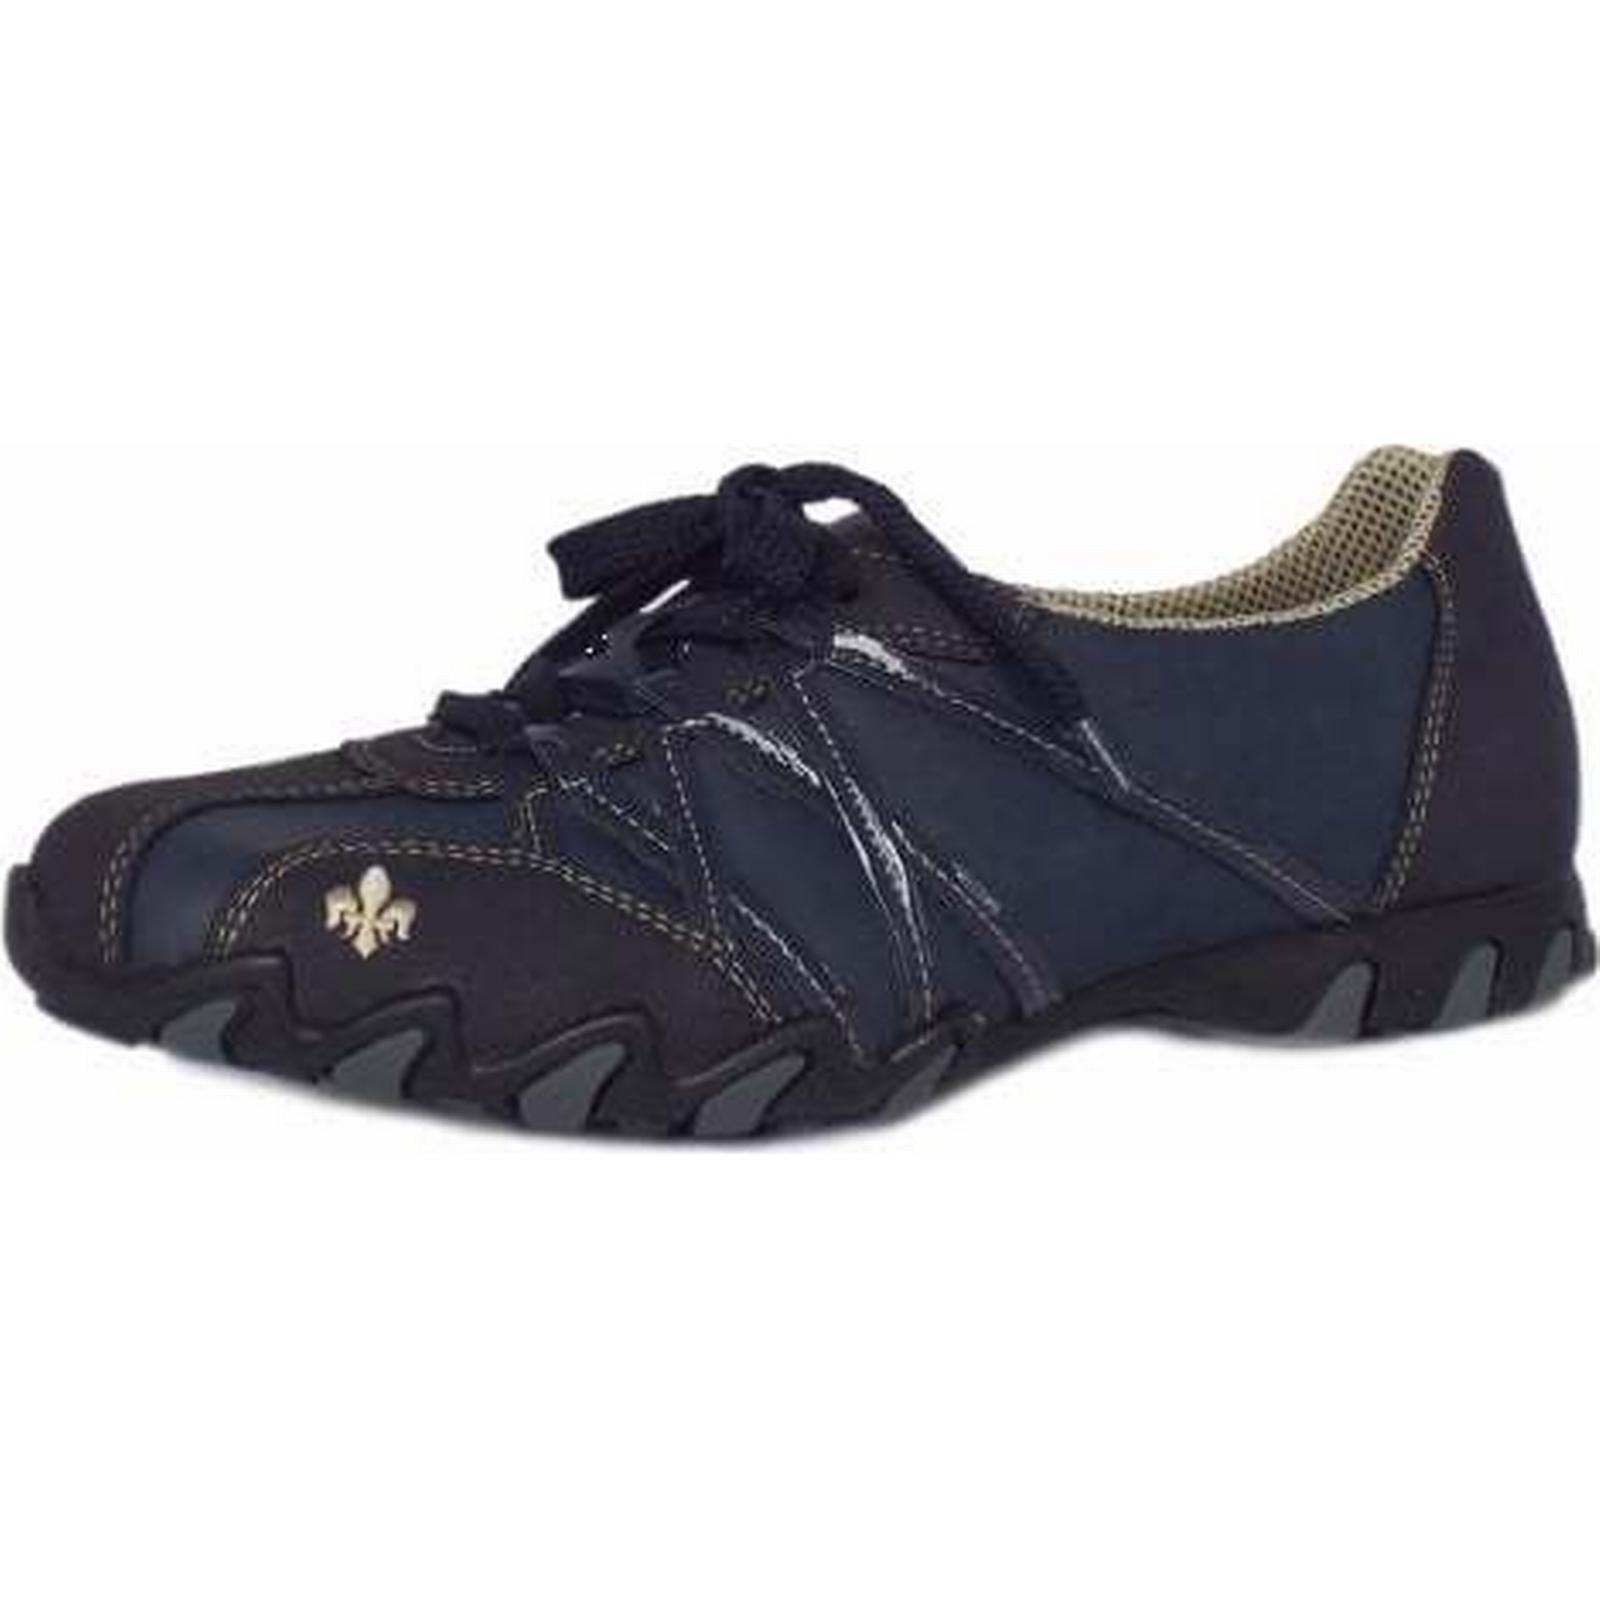 Rieker FIT FAST RIEKER RIEKER FAST LADIES SPORTS SHOES Size: 43, Colour: NAVY cc67b2